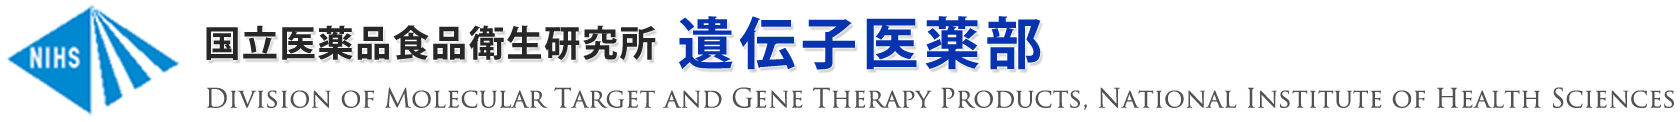 国立医薬品食品衛生研究所 遺伝子医薬部 Division of Molecular Target and Gene Therapy Products, National Institute of Health Sciences